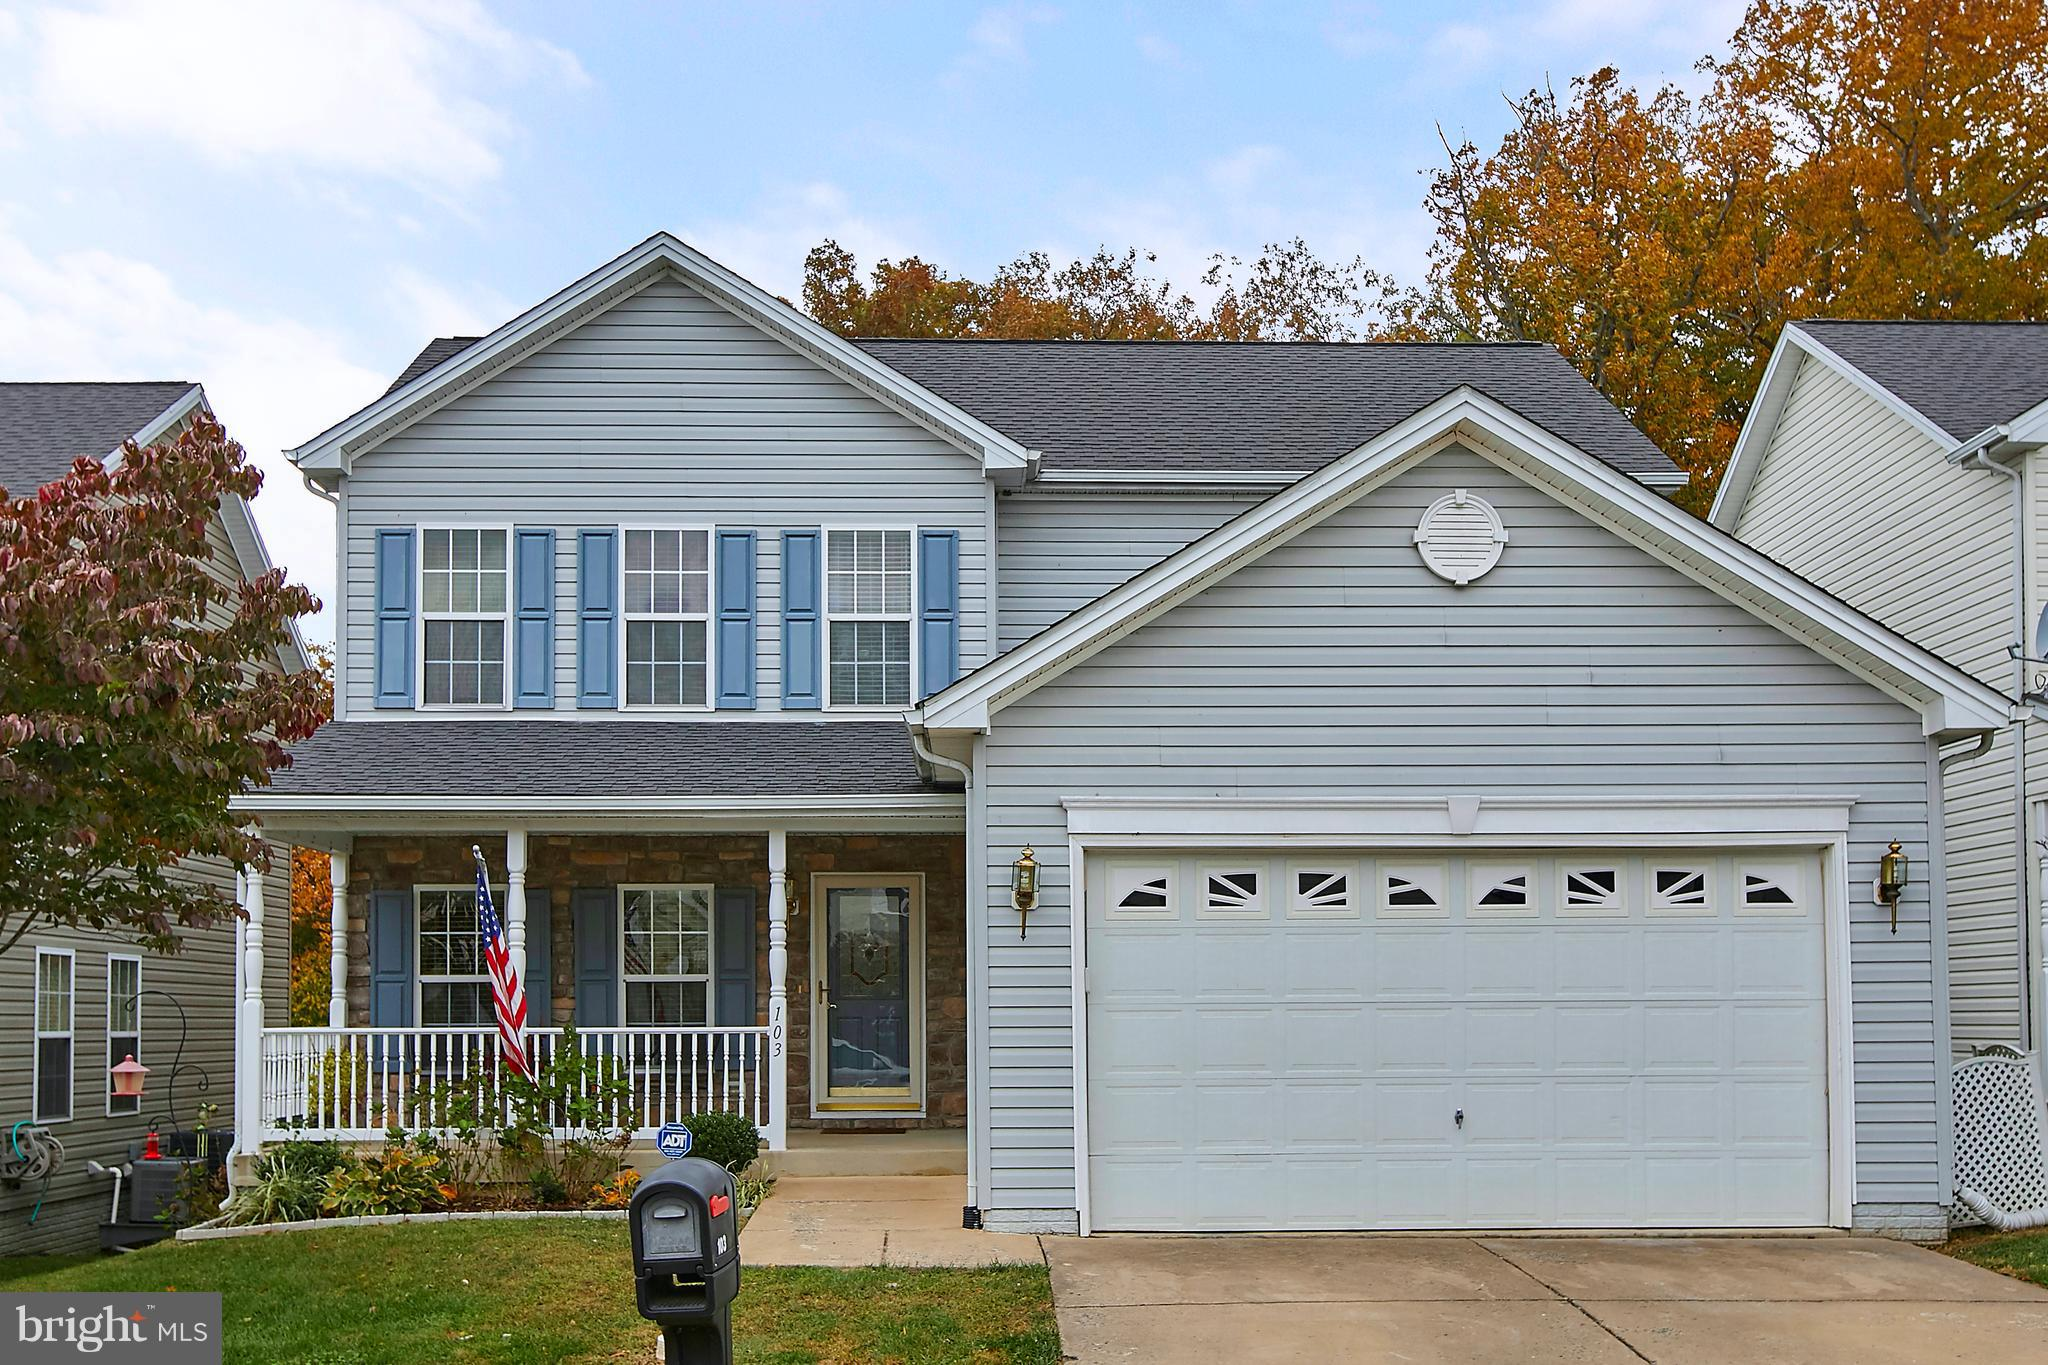 This beautiful SFH offers 4 BR, 3.5 BA and 3 fully finished lvls backing to mature trees. Spacious k